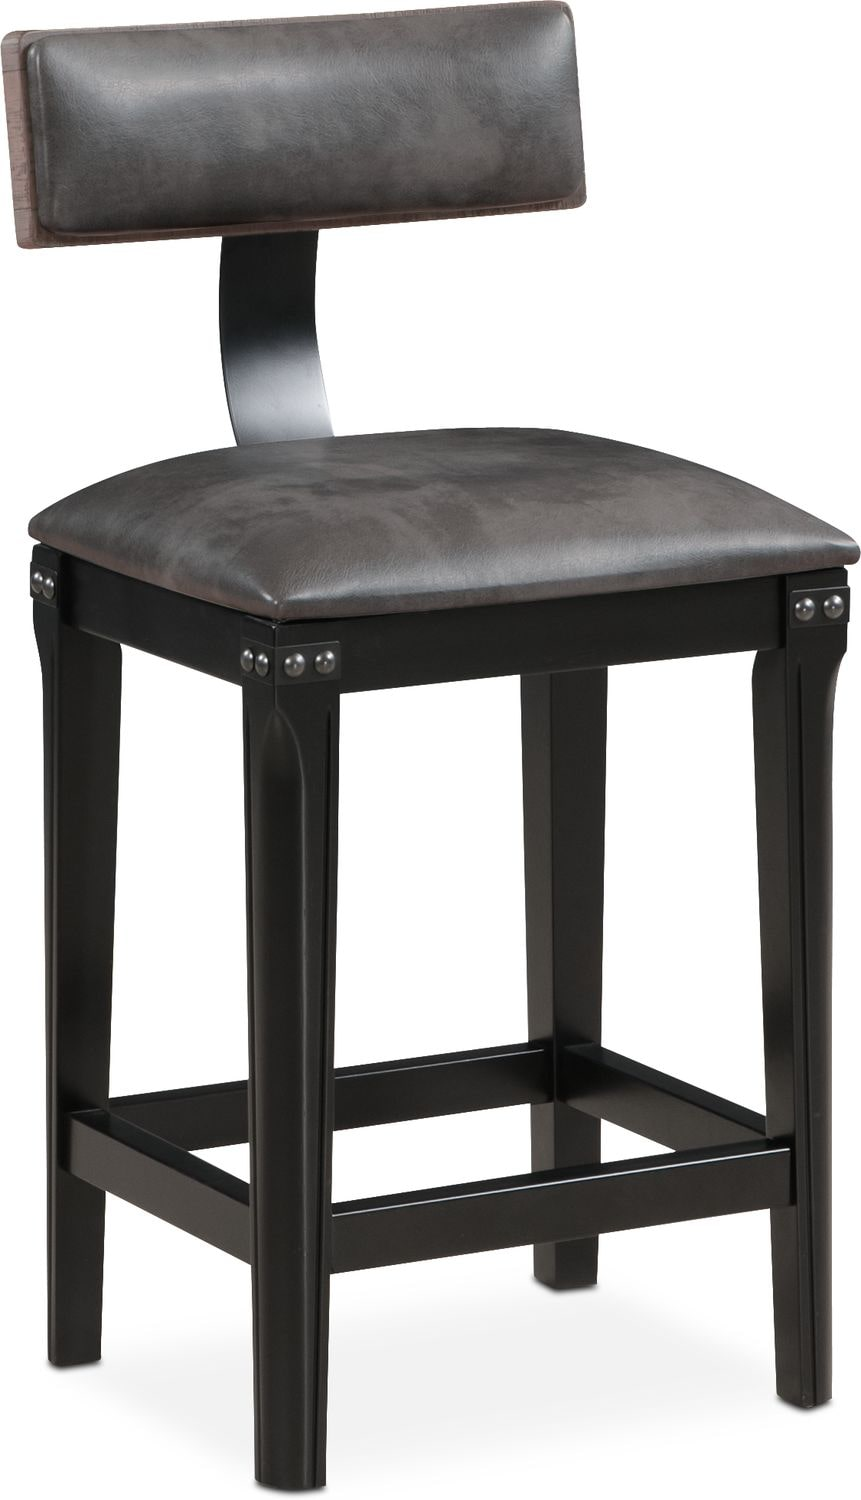 $109.99 Newcastle Counter Height Stool   Gray